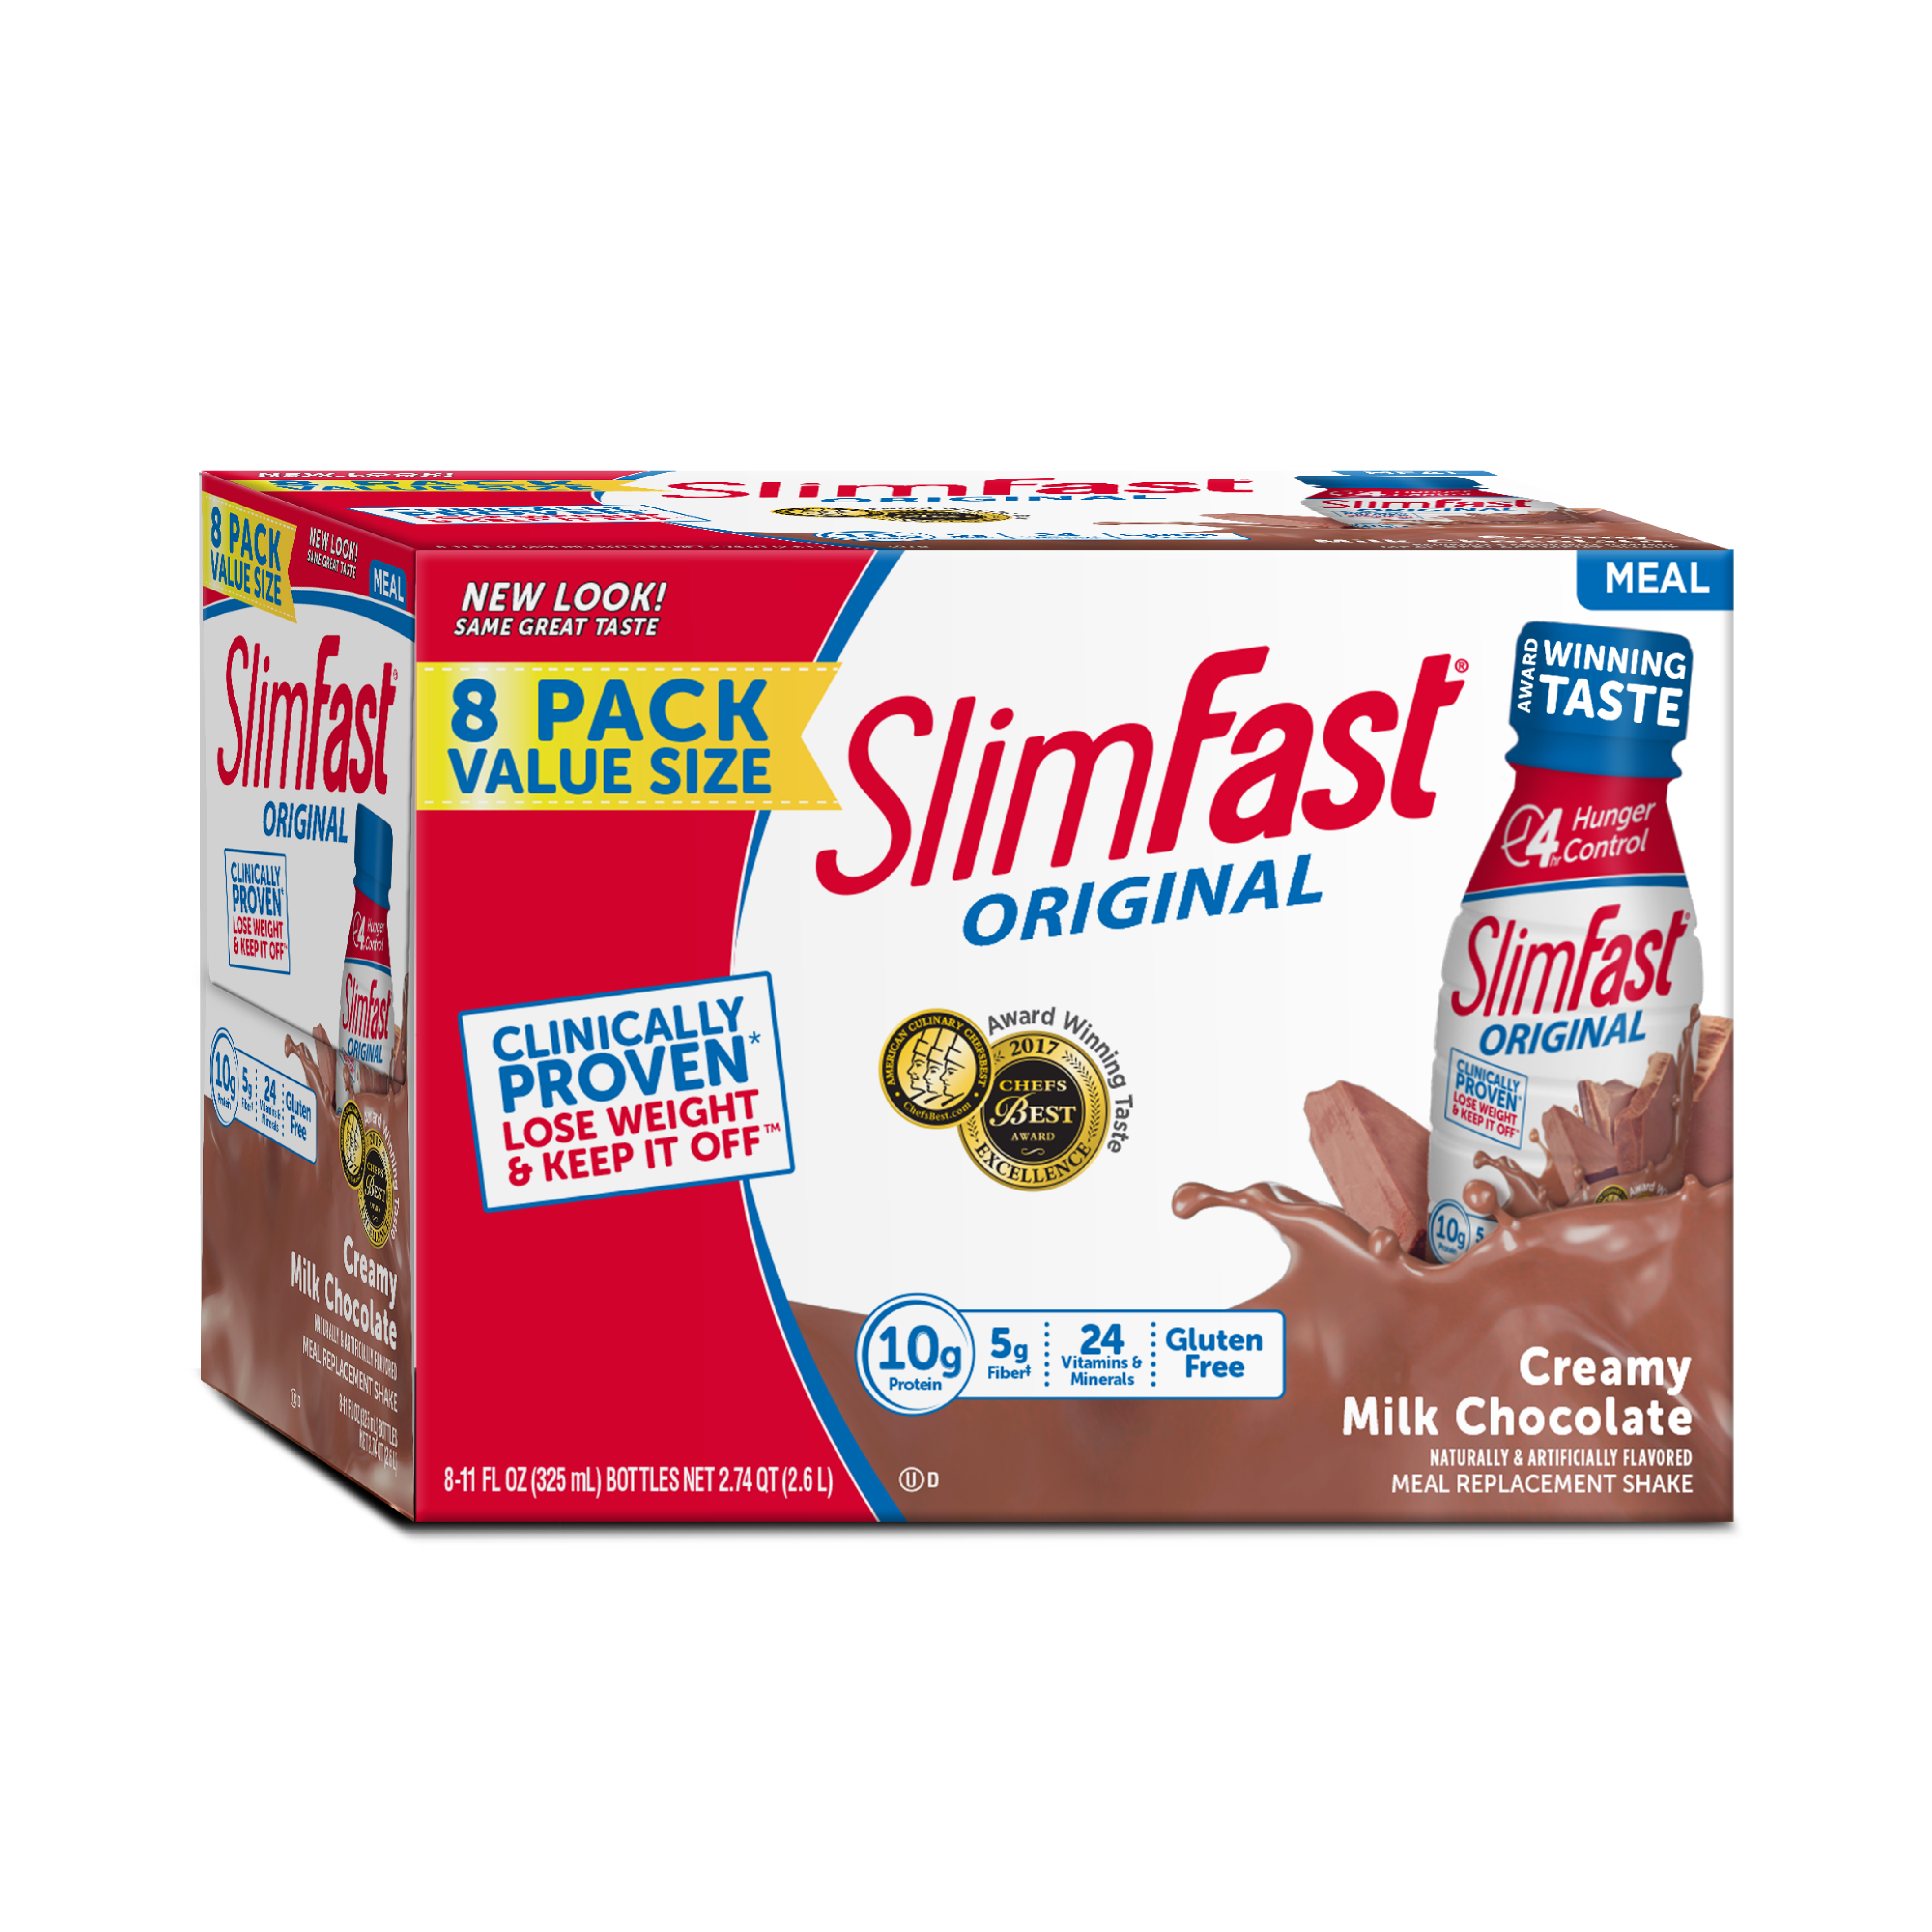 SlimFast Original Ready to Drink Meal Replacement Shakes, Creamy Milk Chocolate, 11 fl. oz., Pack of 8